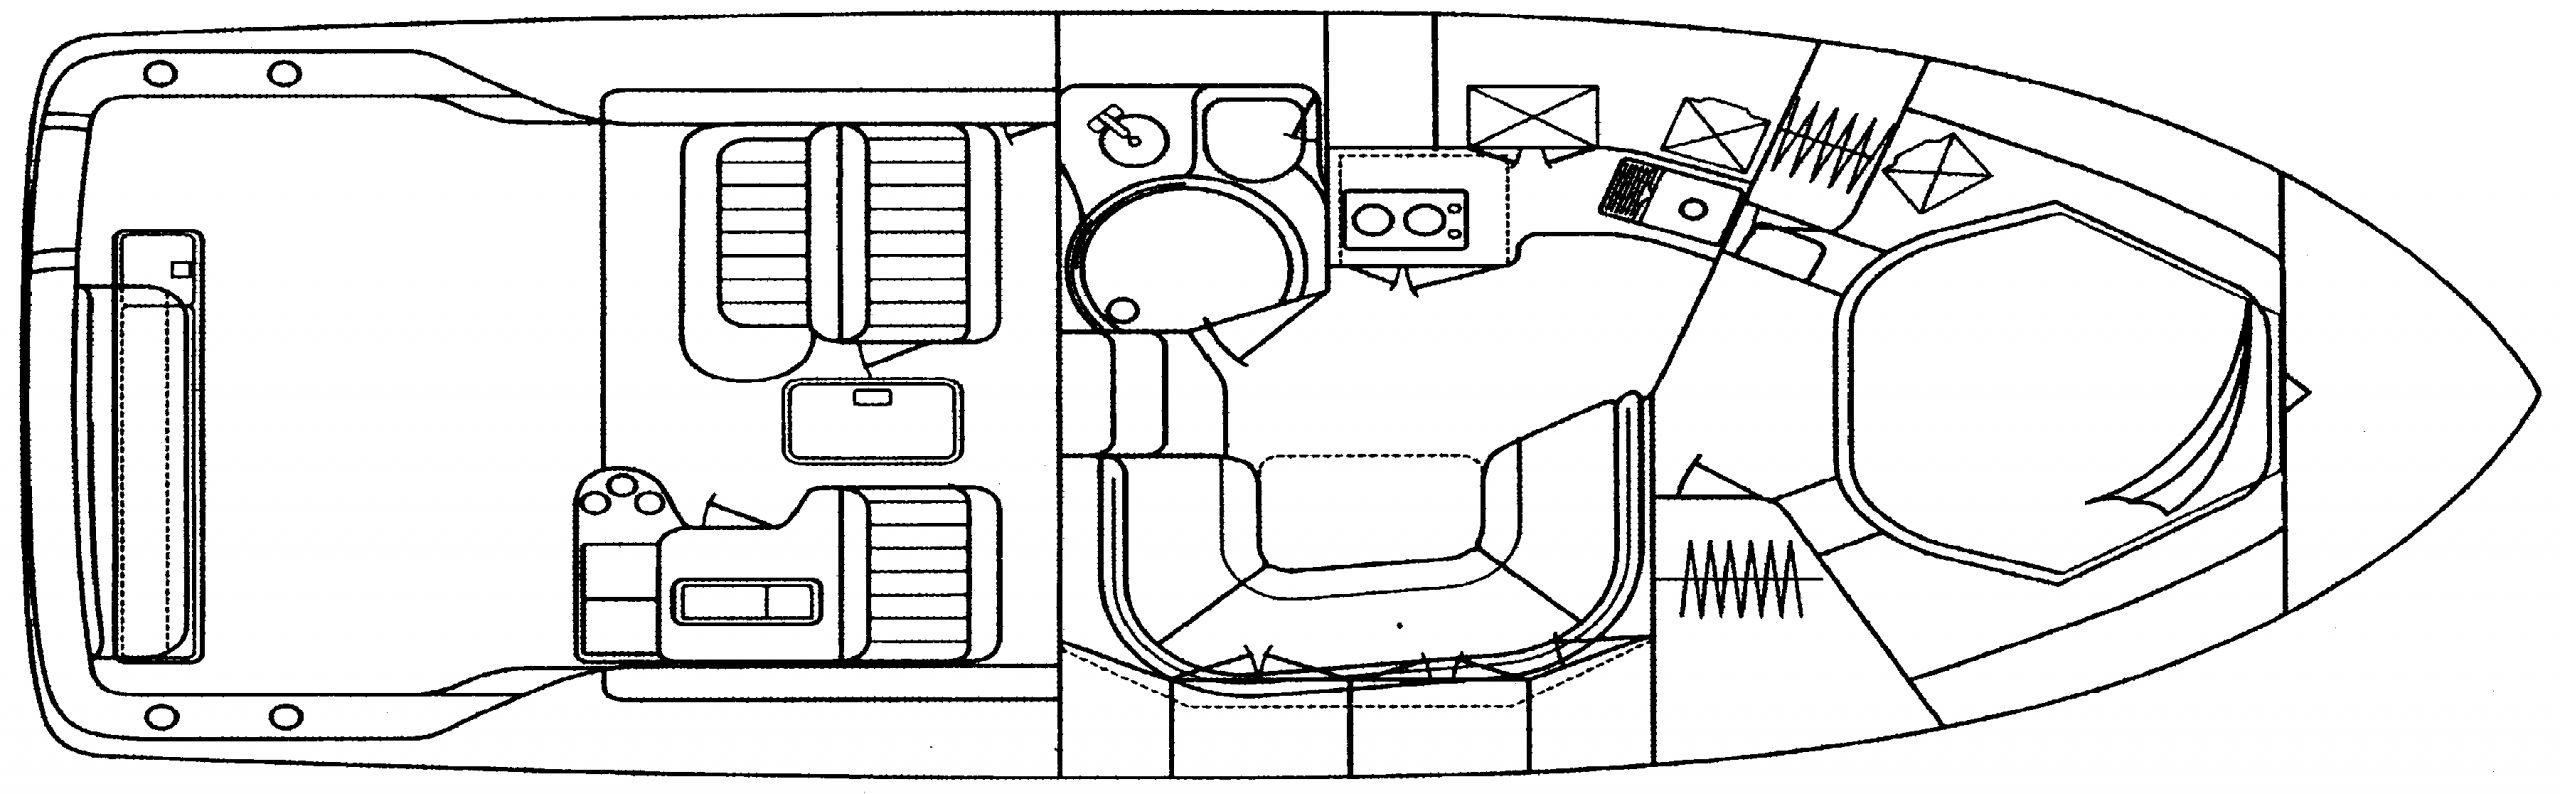 370 Express Cruiser Floor Plan 1